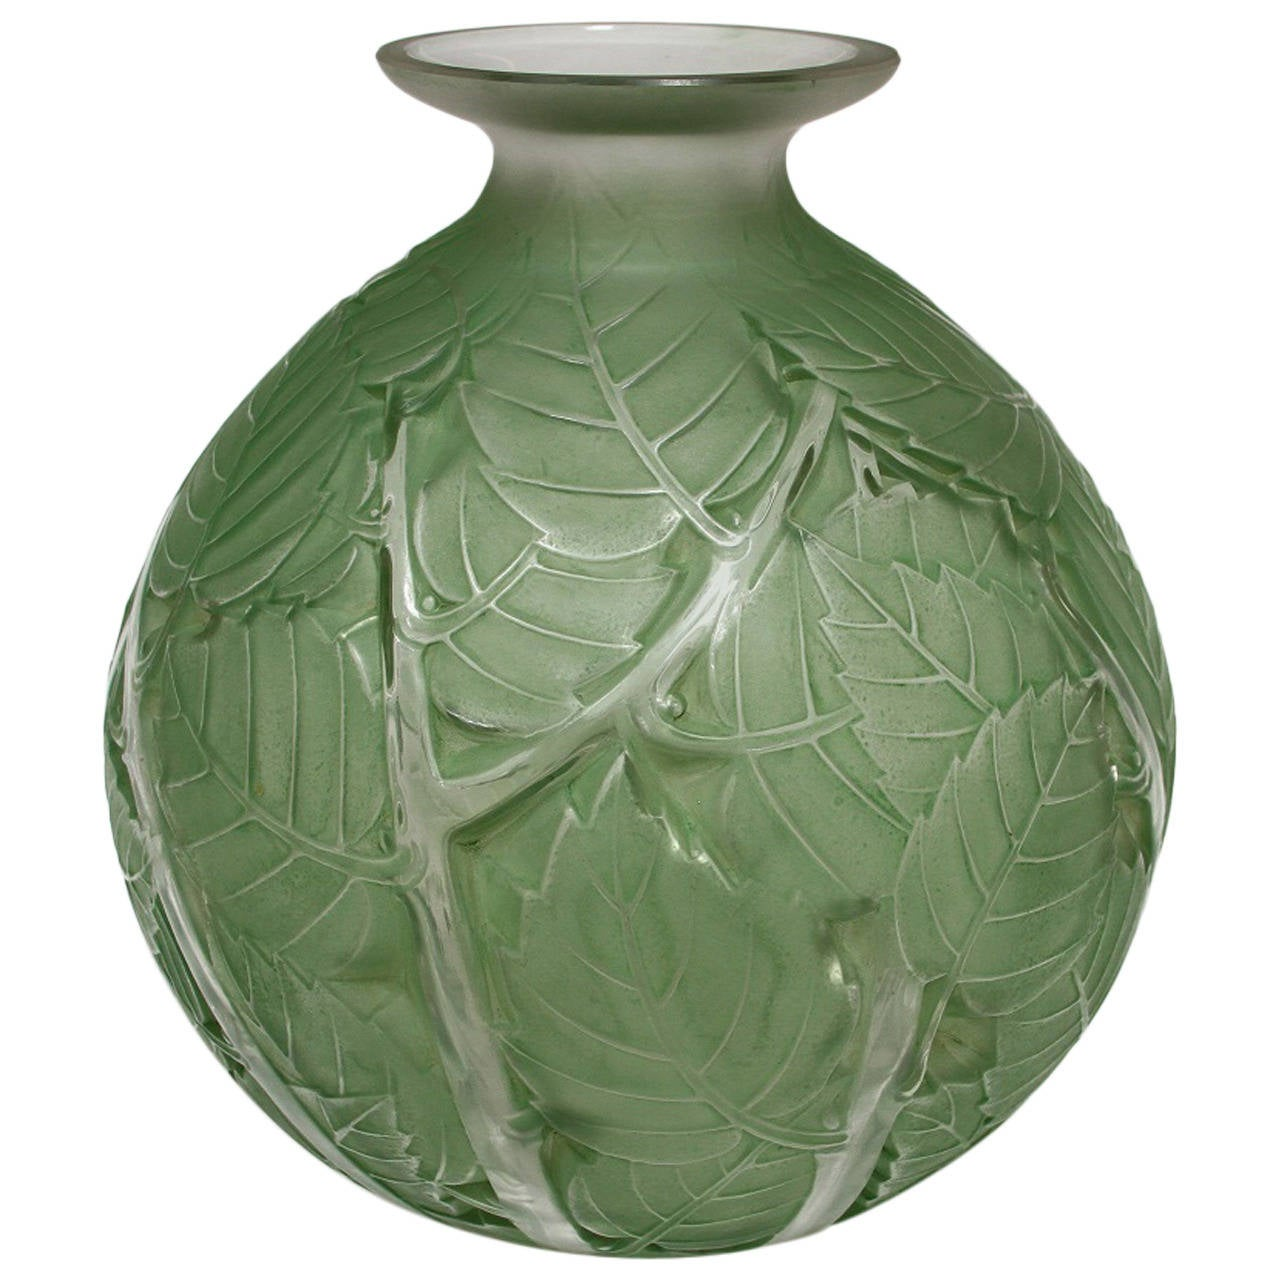 Rene Lalique Quot Milan Quot Glass Green Stain Vase At 1stdibs